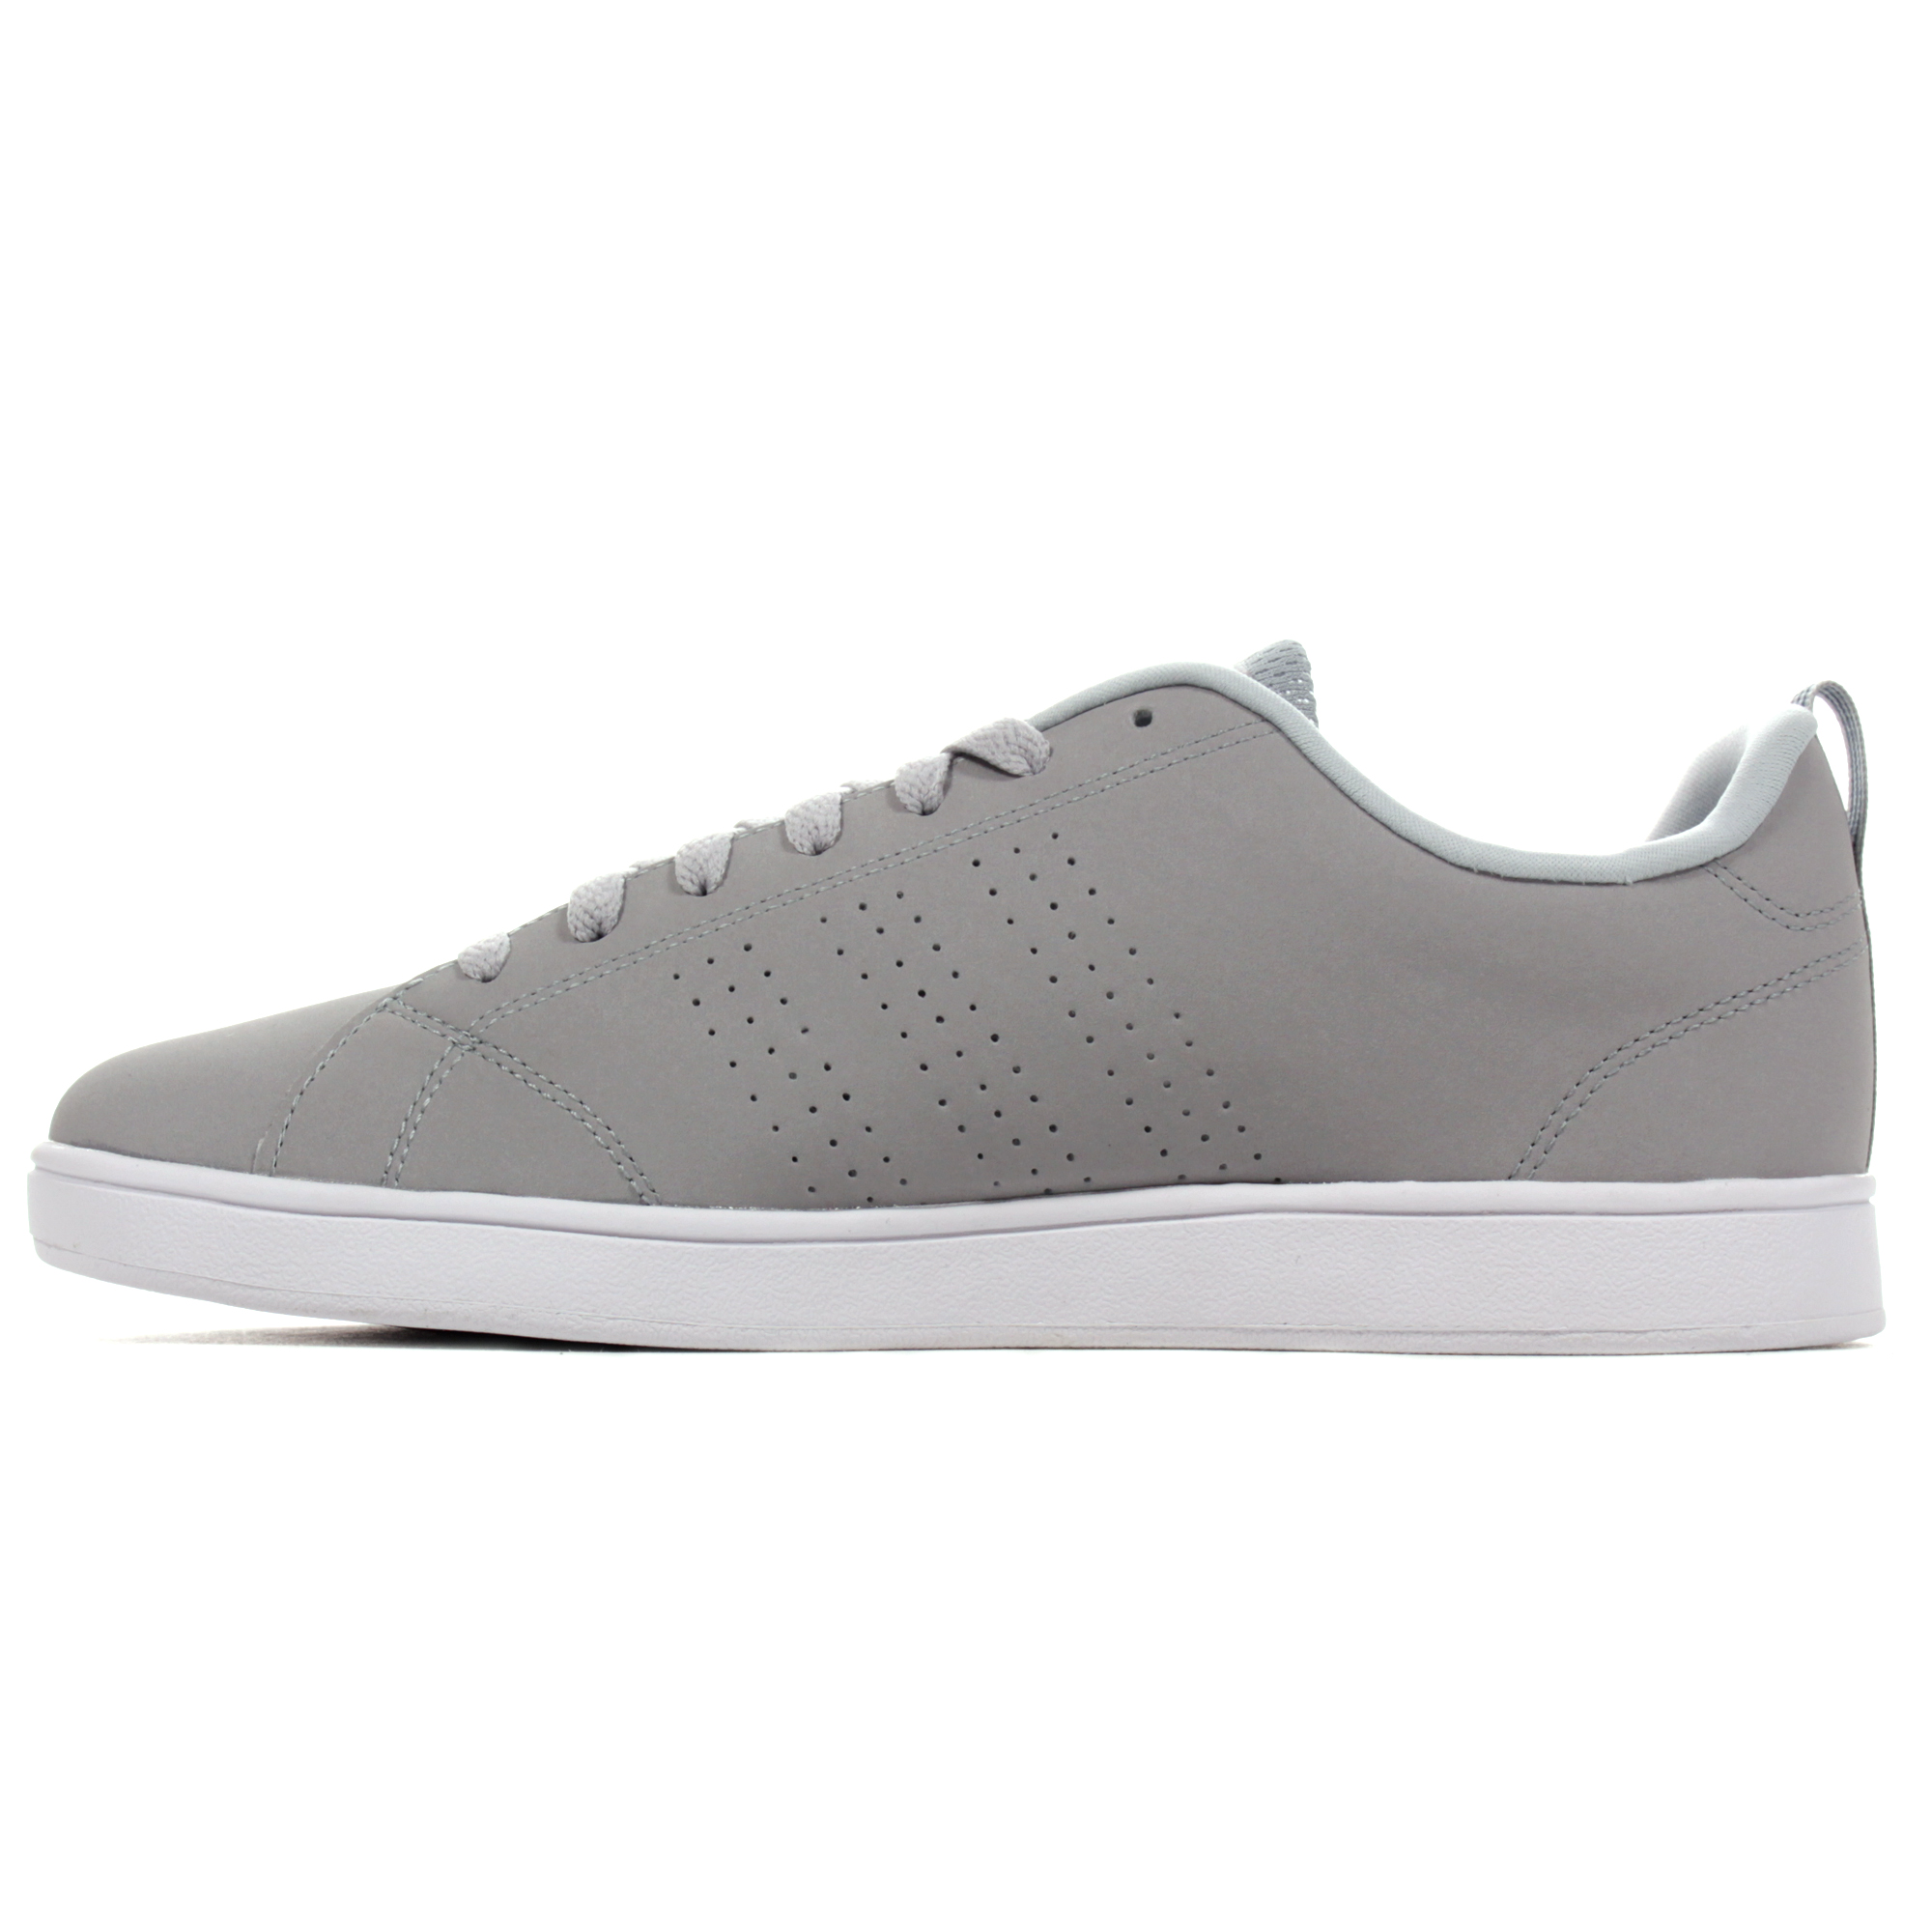 adidas cloudfoam advantage clean men's trainers grey